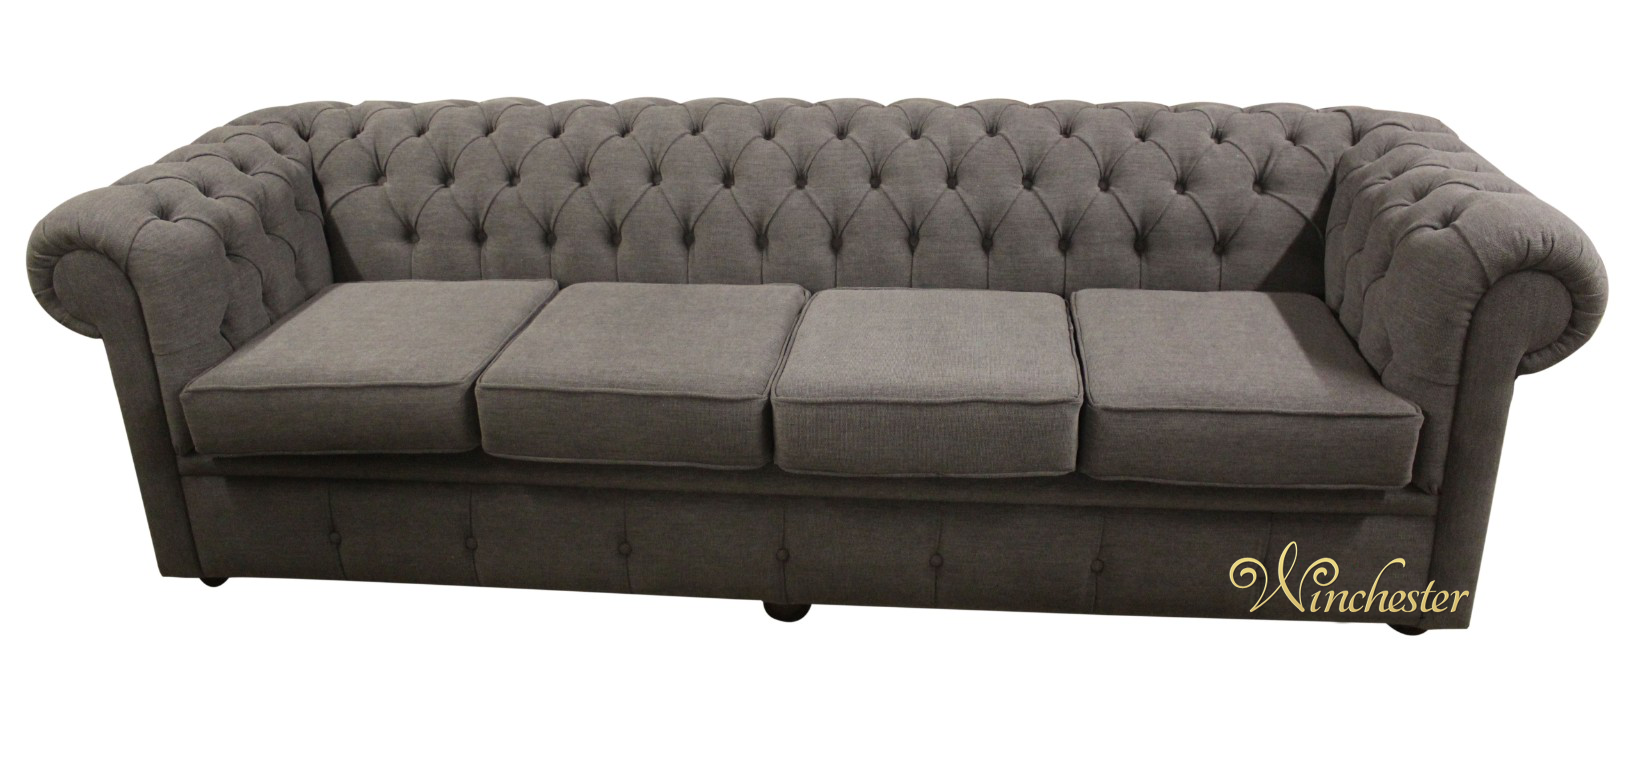 Seater queen anne high back wing sofa uk manufactured antique green -  Boutique Storm Boutique Gold